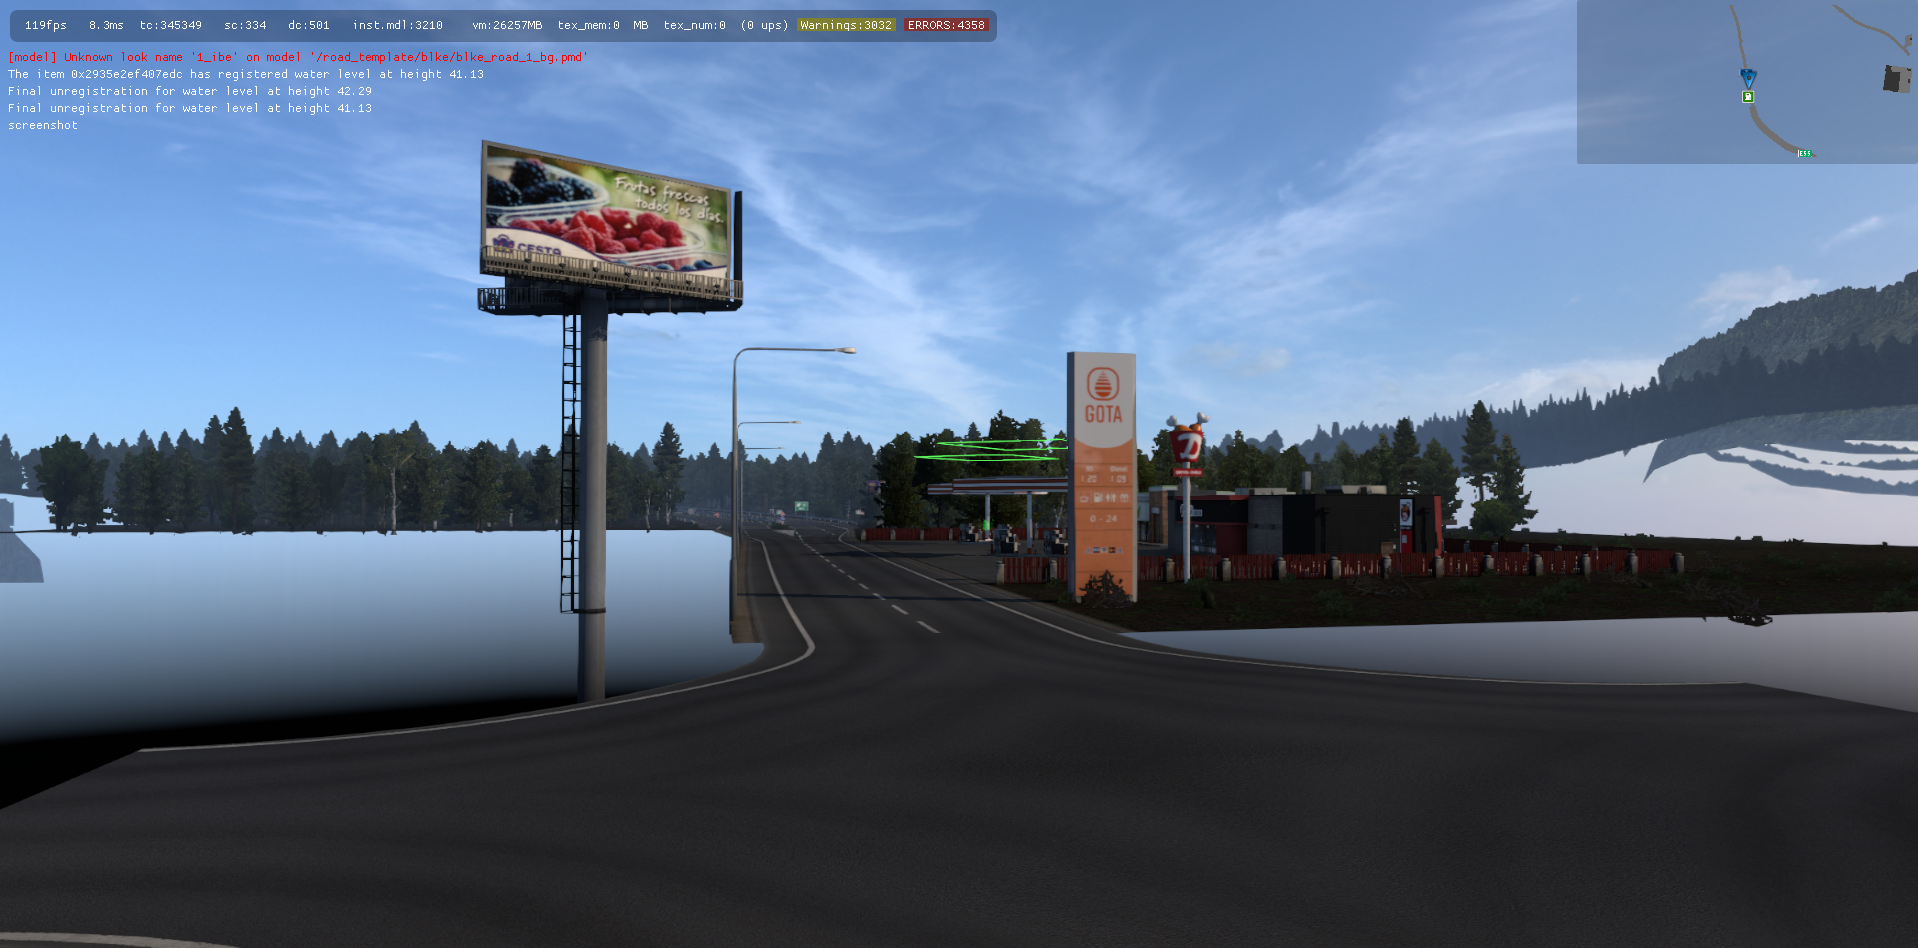 ets2_20210428_203926_00.png